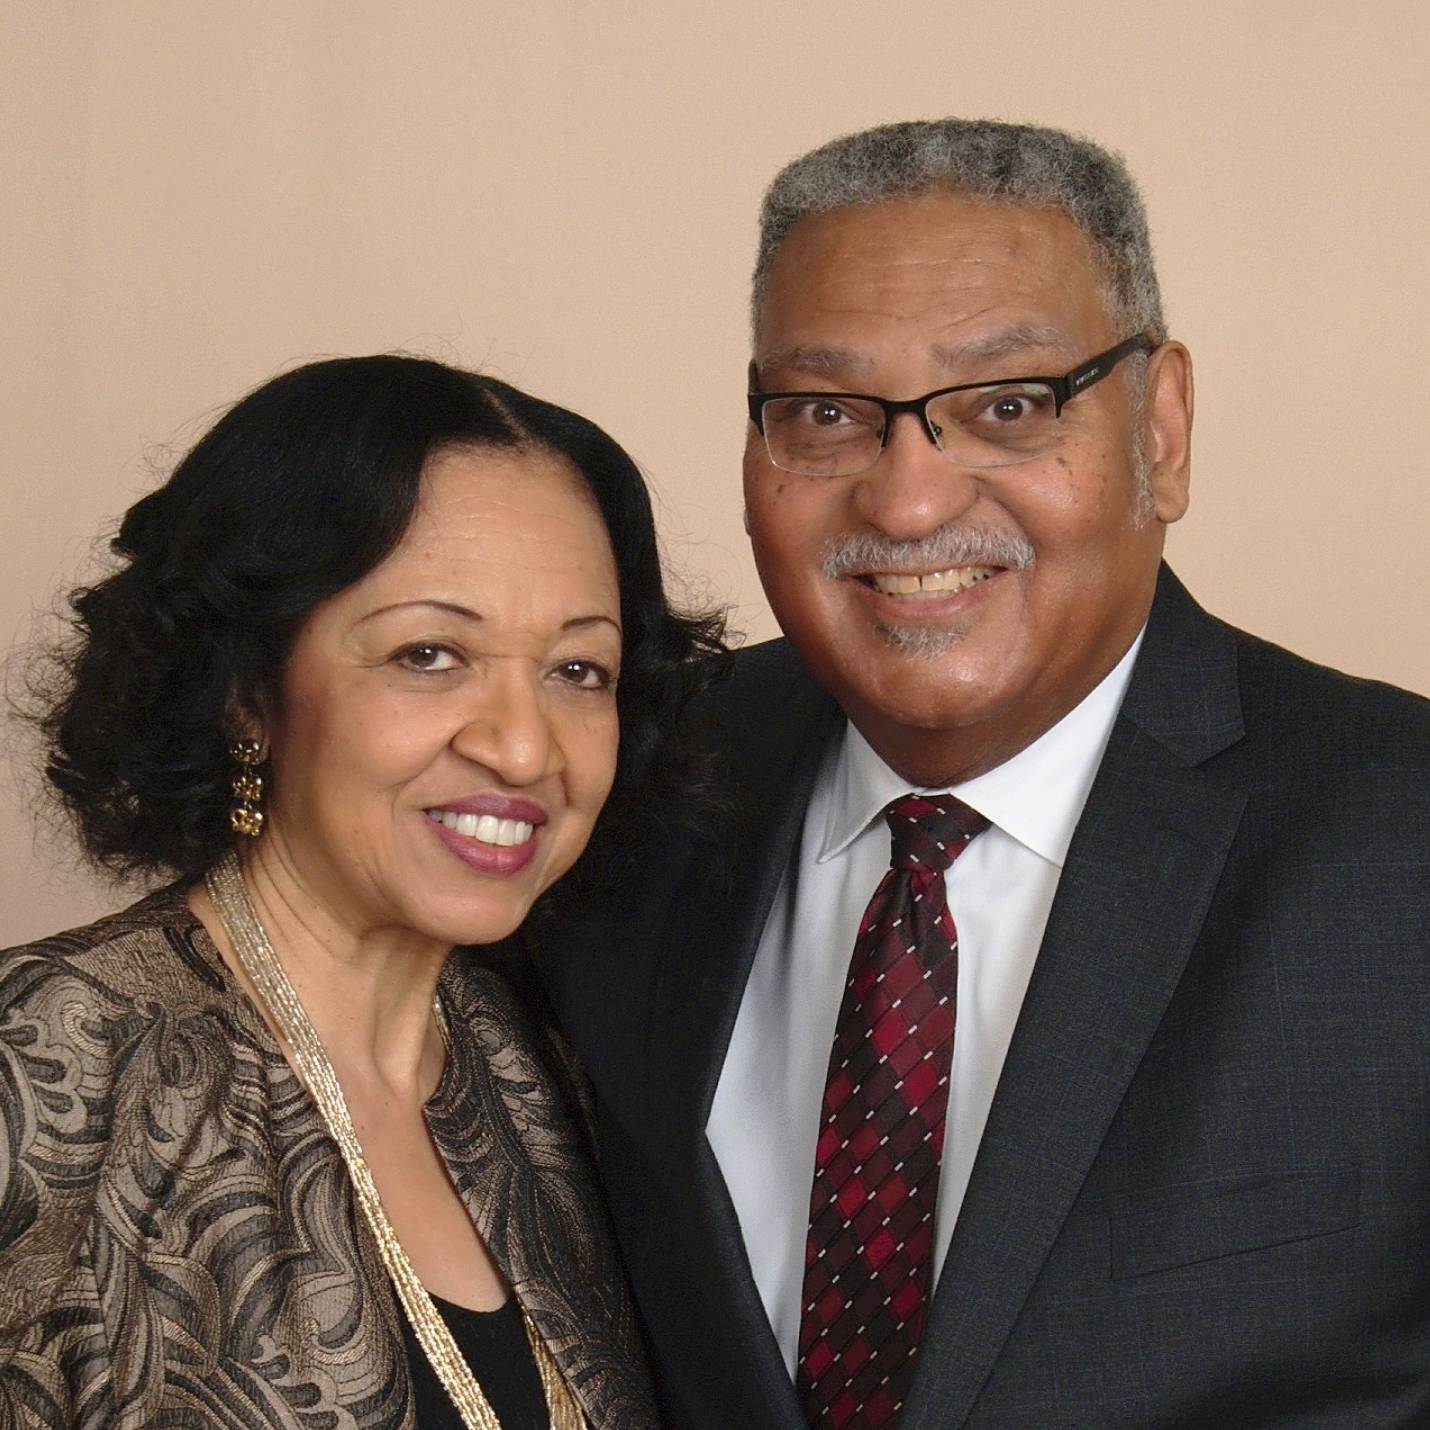 Mrs. Patricia S. May and Dr. Gordon F. May